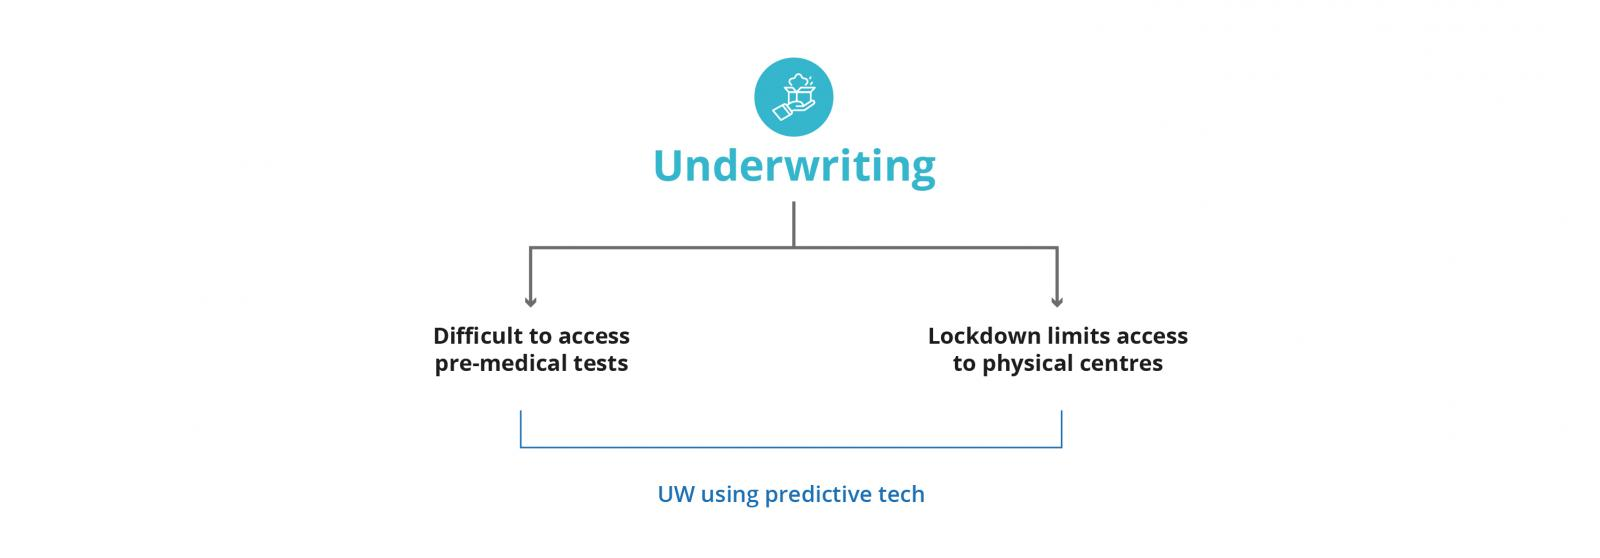 insurance lifecycle mapped to underwriting